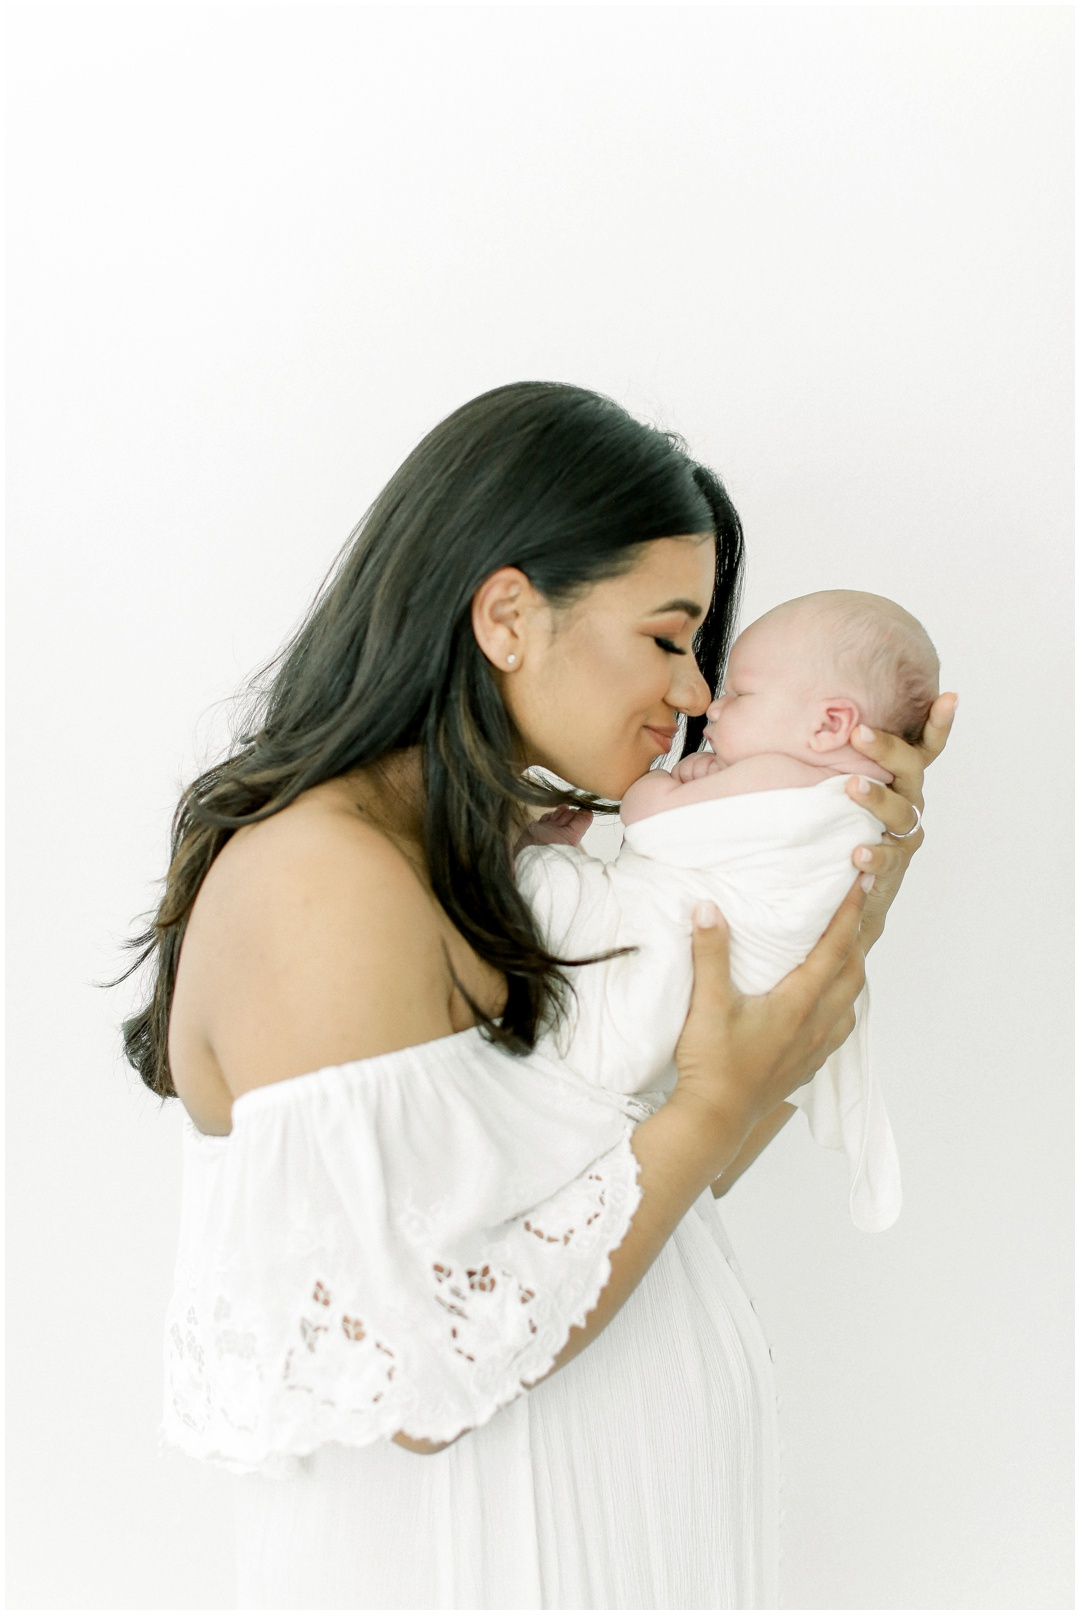 Newport_Beach_Newborn_Light_Airy_Natural_Photographer_Newport_Beach_In-Home_Photographer_Orange_County_Family_Photographer_Cori_Kleckner_Photography_Huntington_Beach_Photographer_Family_OC_Newborn_Cara_Burbank_Jeff_Burbank_Newborn_Family__3199.jpg